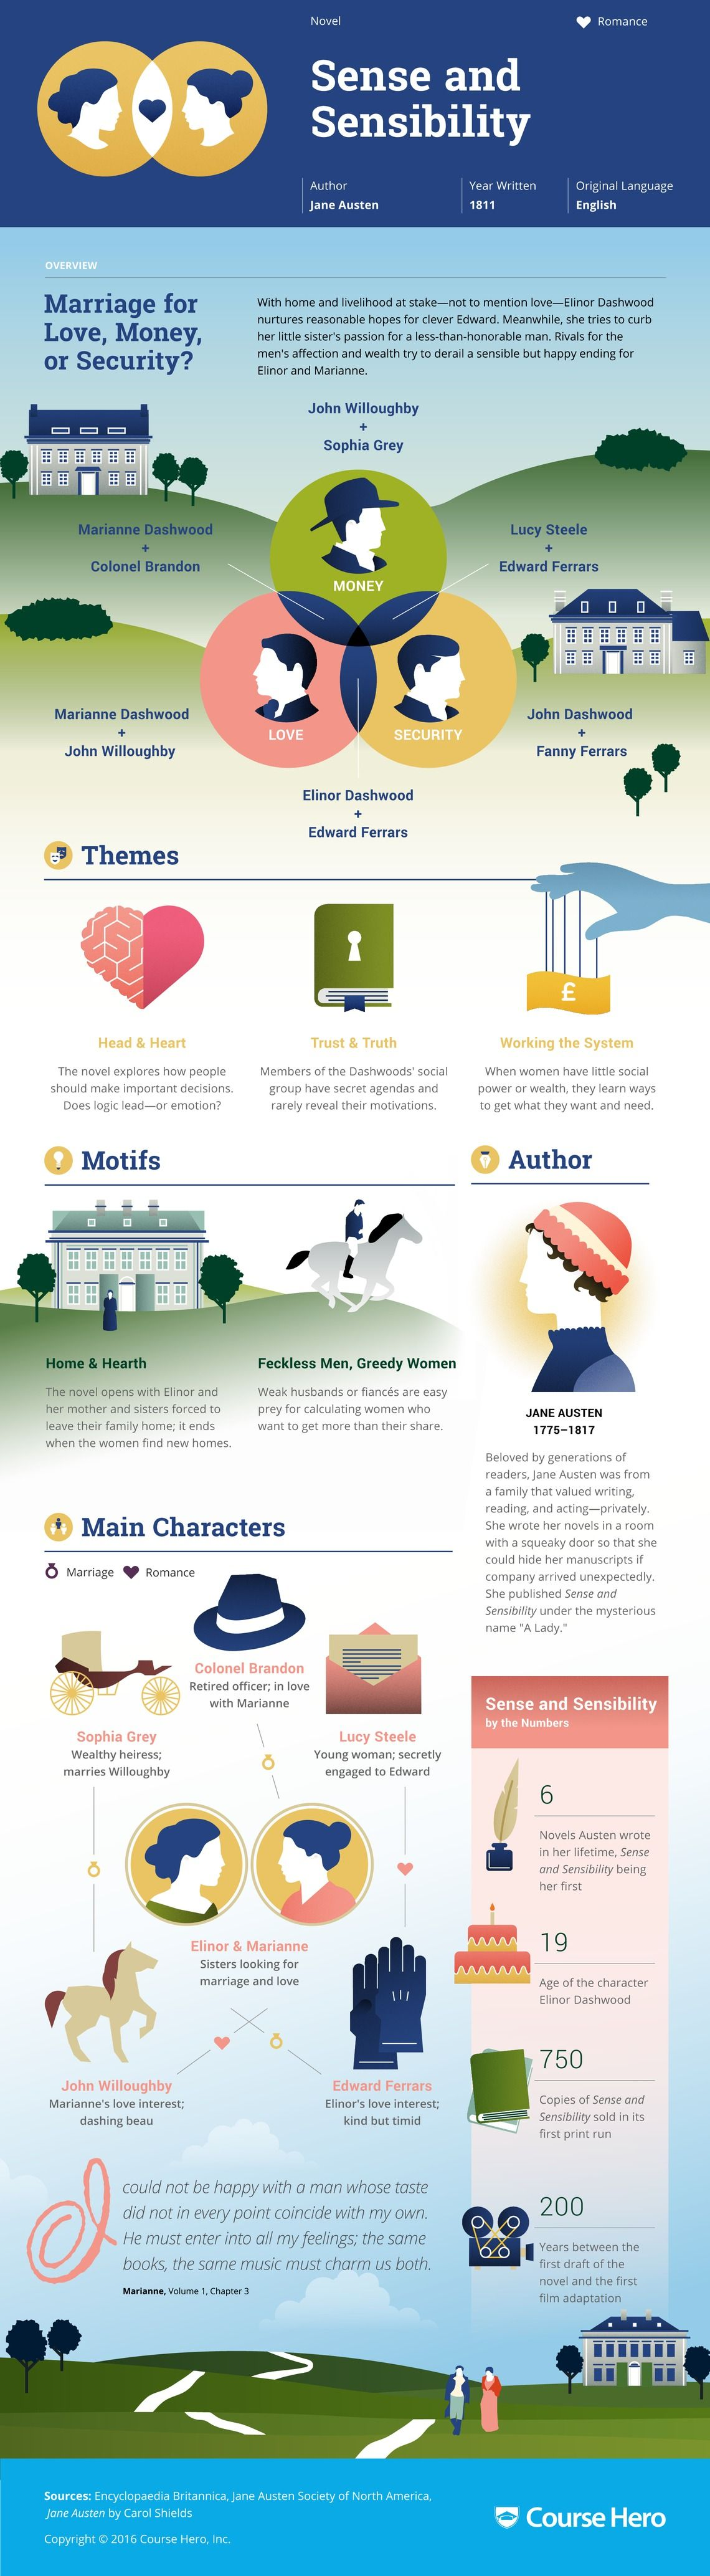 sense and sensibility infographic course hero my humanities sense and sensibility infographic course hero